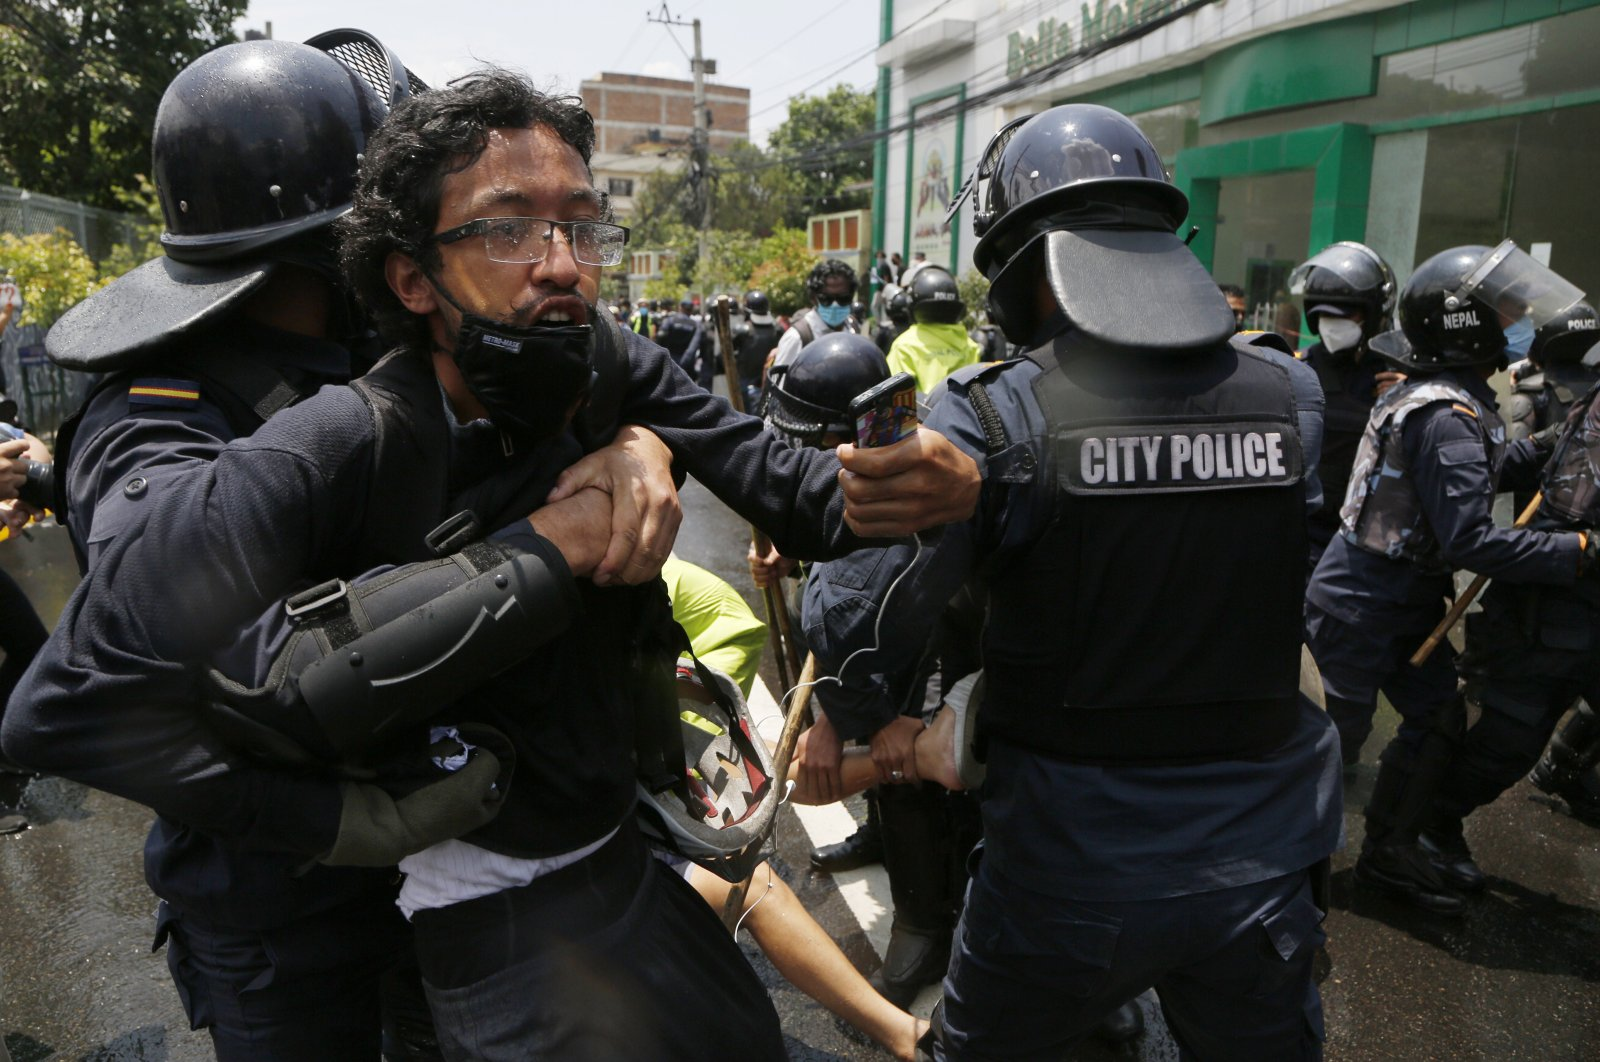 Nepalese police in riot gear detain youth who were protesting on a road leading to the prime minister's official residence in Kathmandu, Nepal, June 9, 2020. (AP Photo)